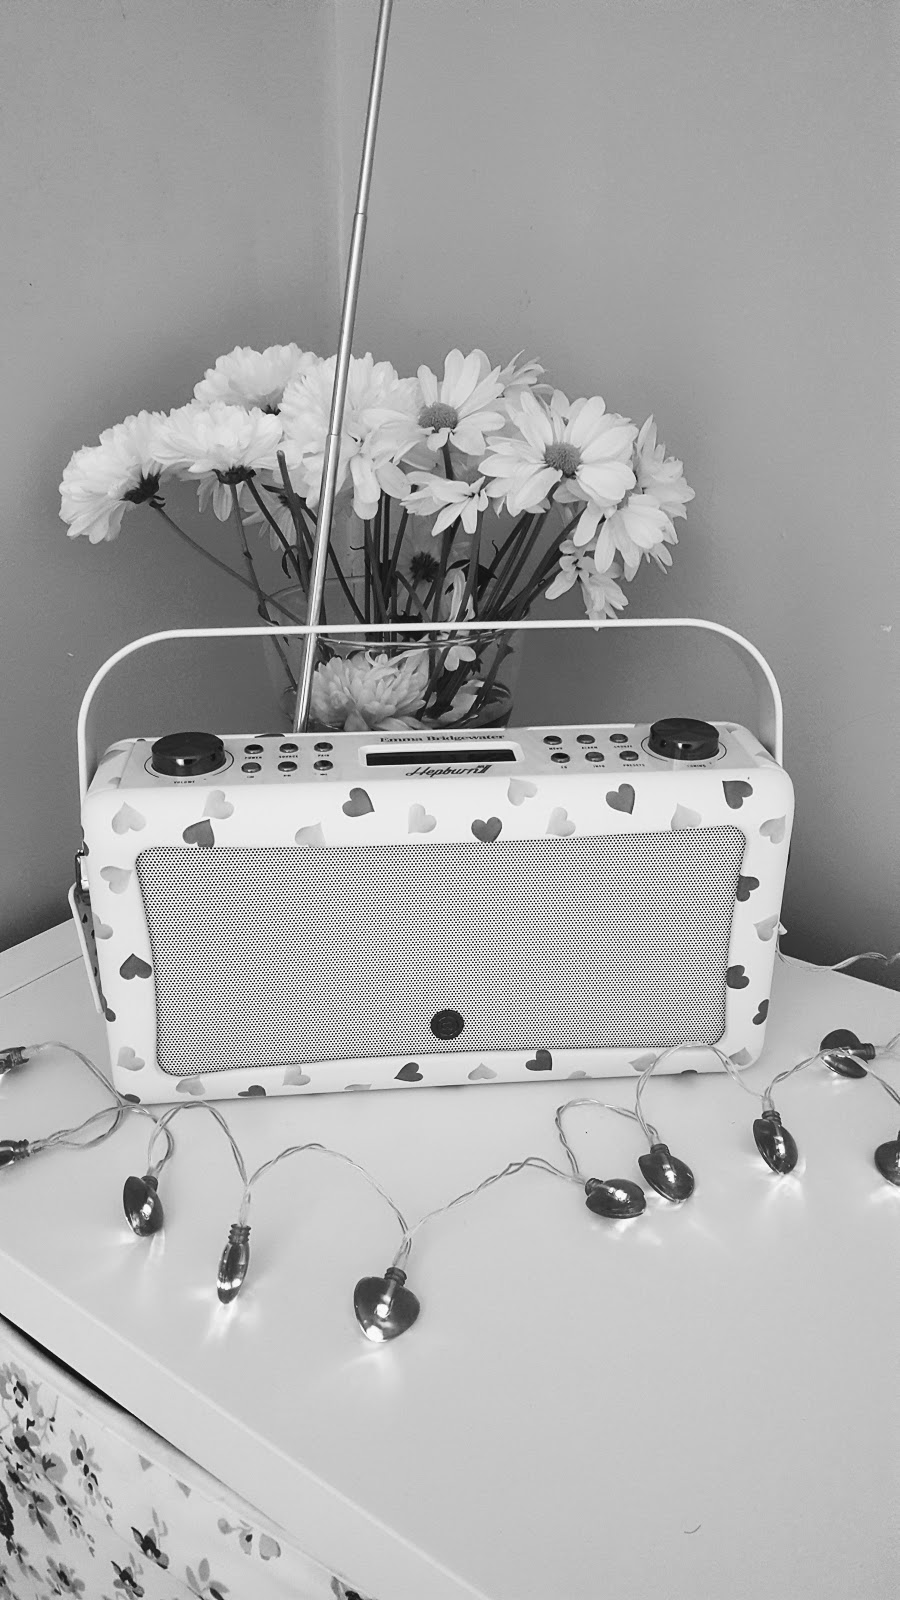 £50 off an Emma Bridgewater Hepburn Mk II Digital Radio